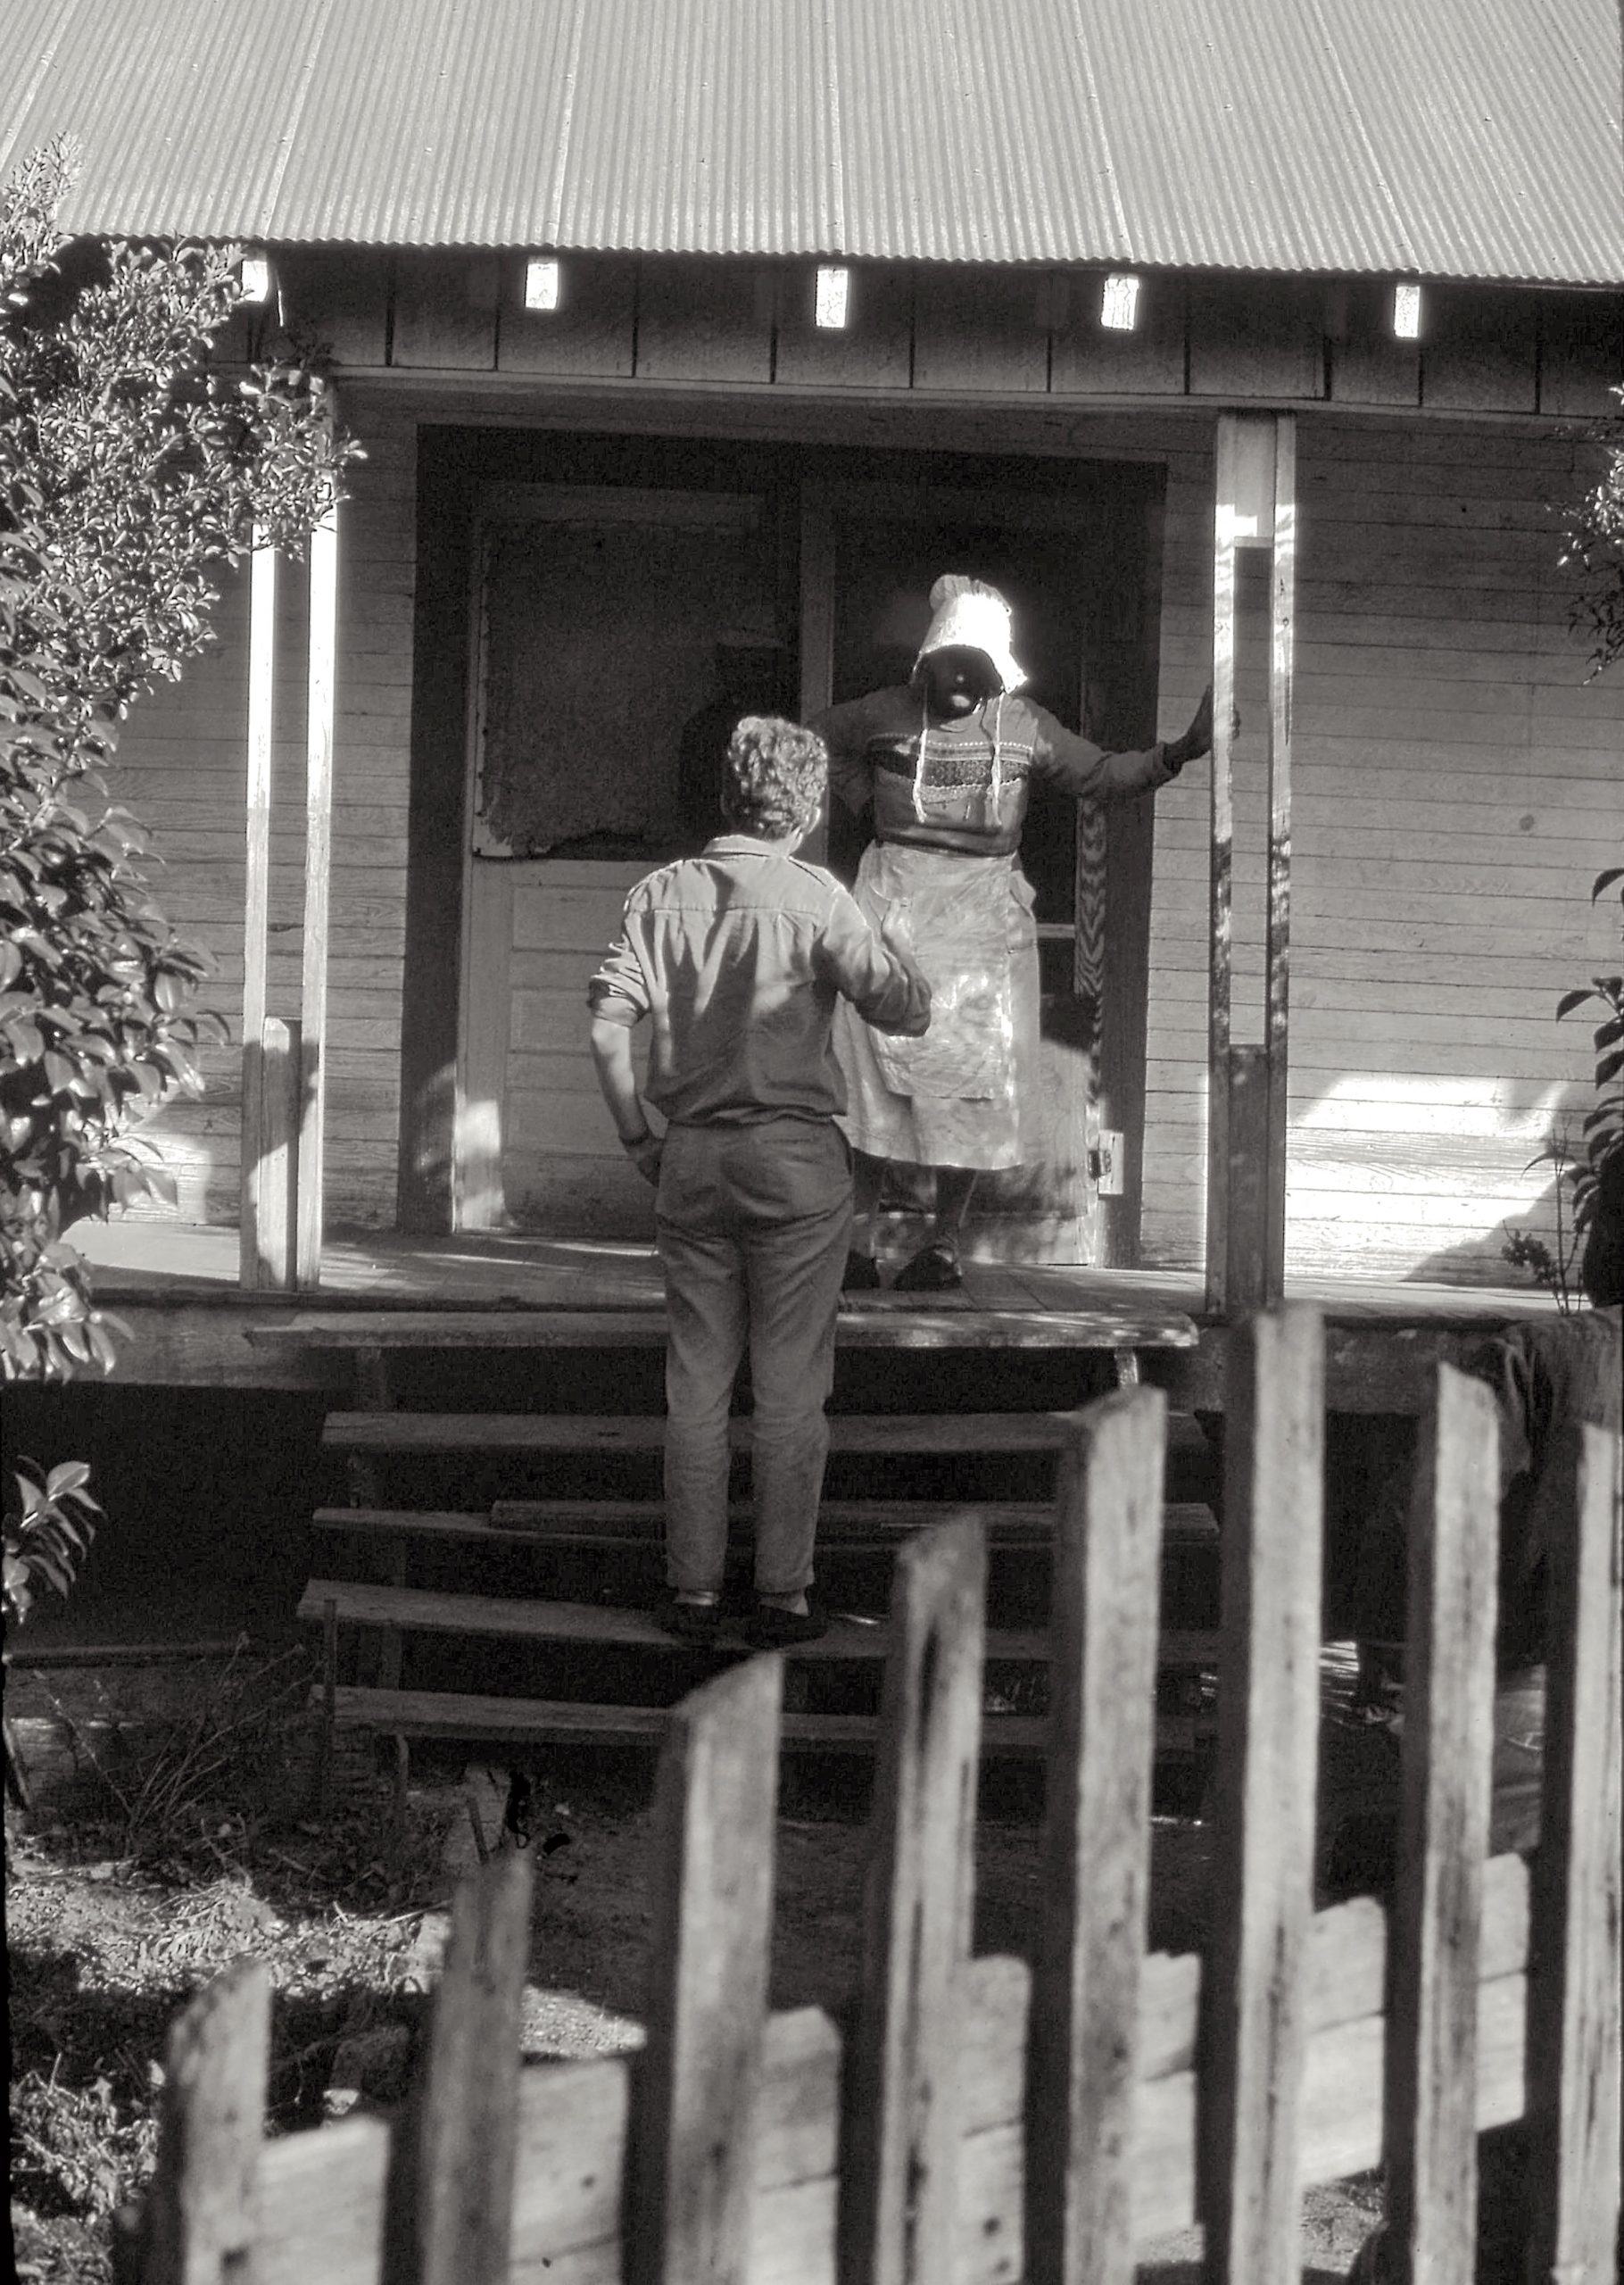 A member of Jim Lemkin's group meets an African-American woman on her front step to discuss the Voting Rights Act of 1965 and the lifting of voter suppression tactics.